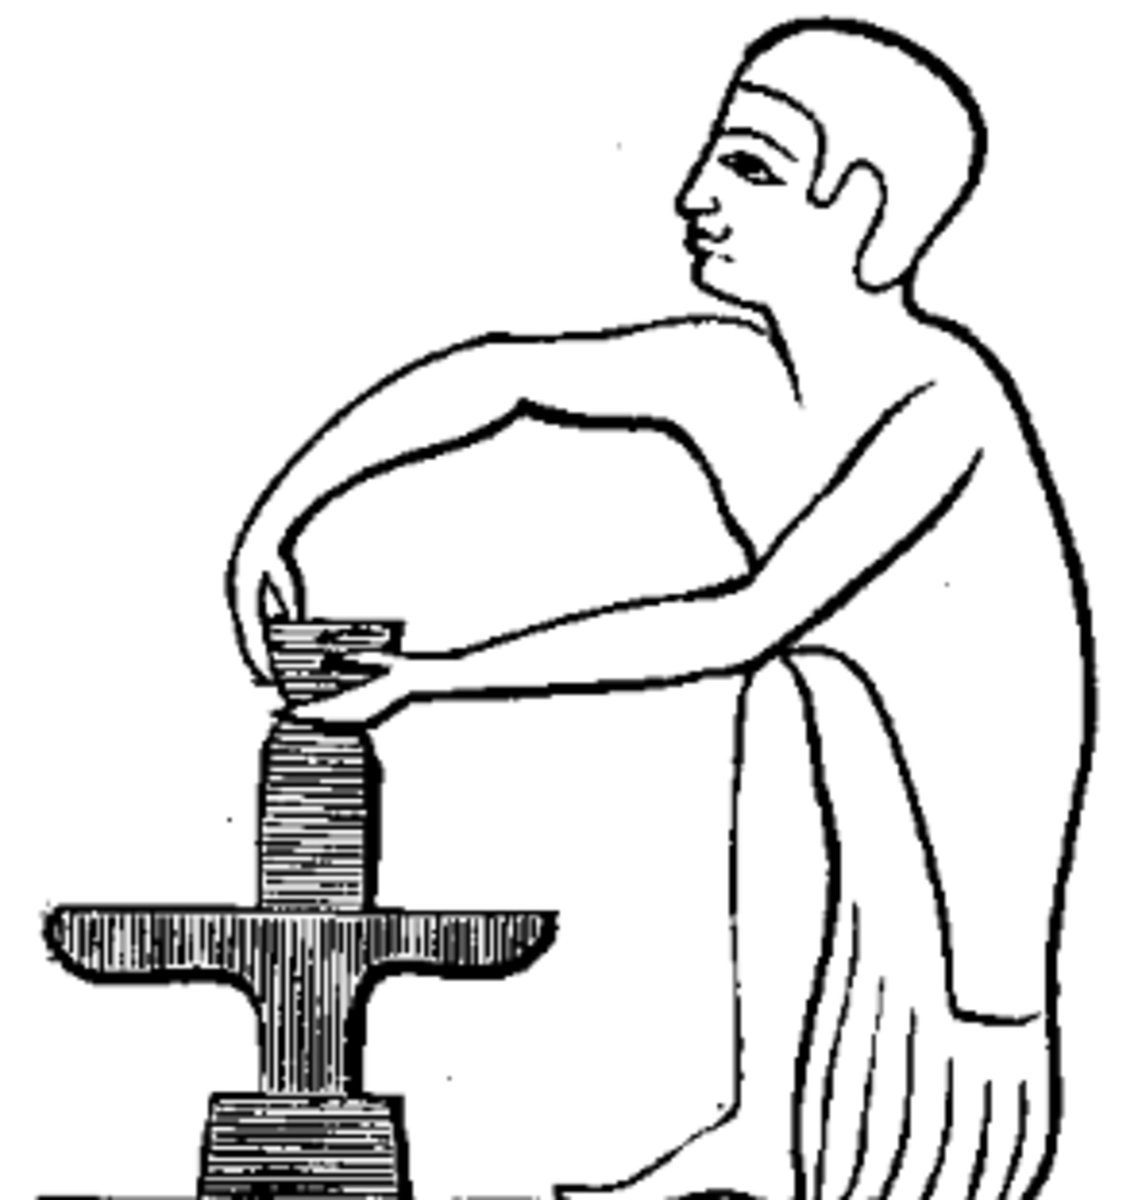 Image of a hand-turned potter's wheel, from Egypt circa 1800 B.C